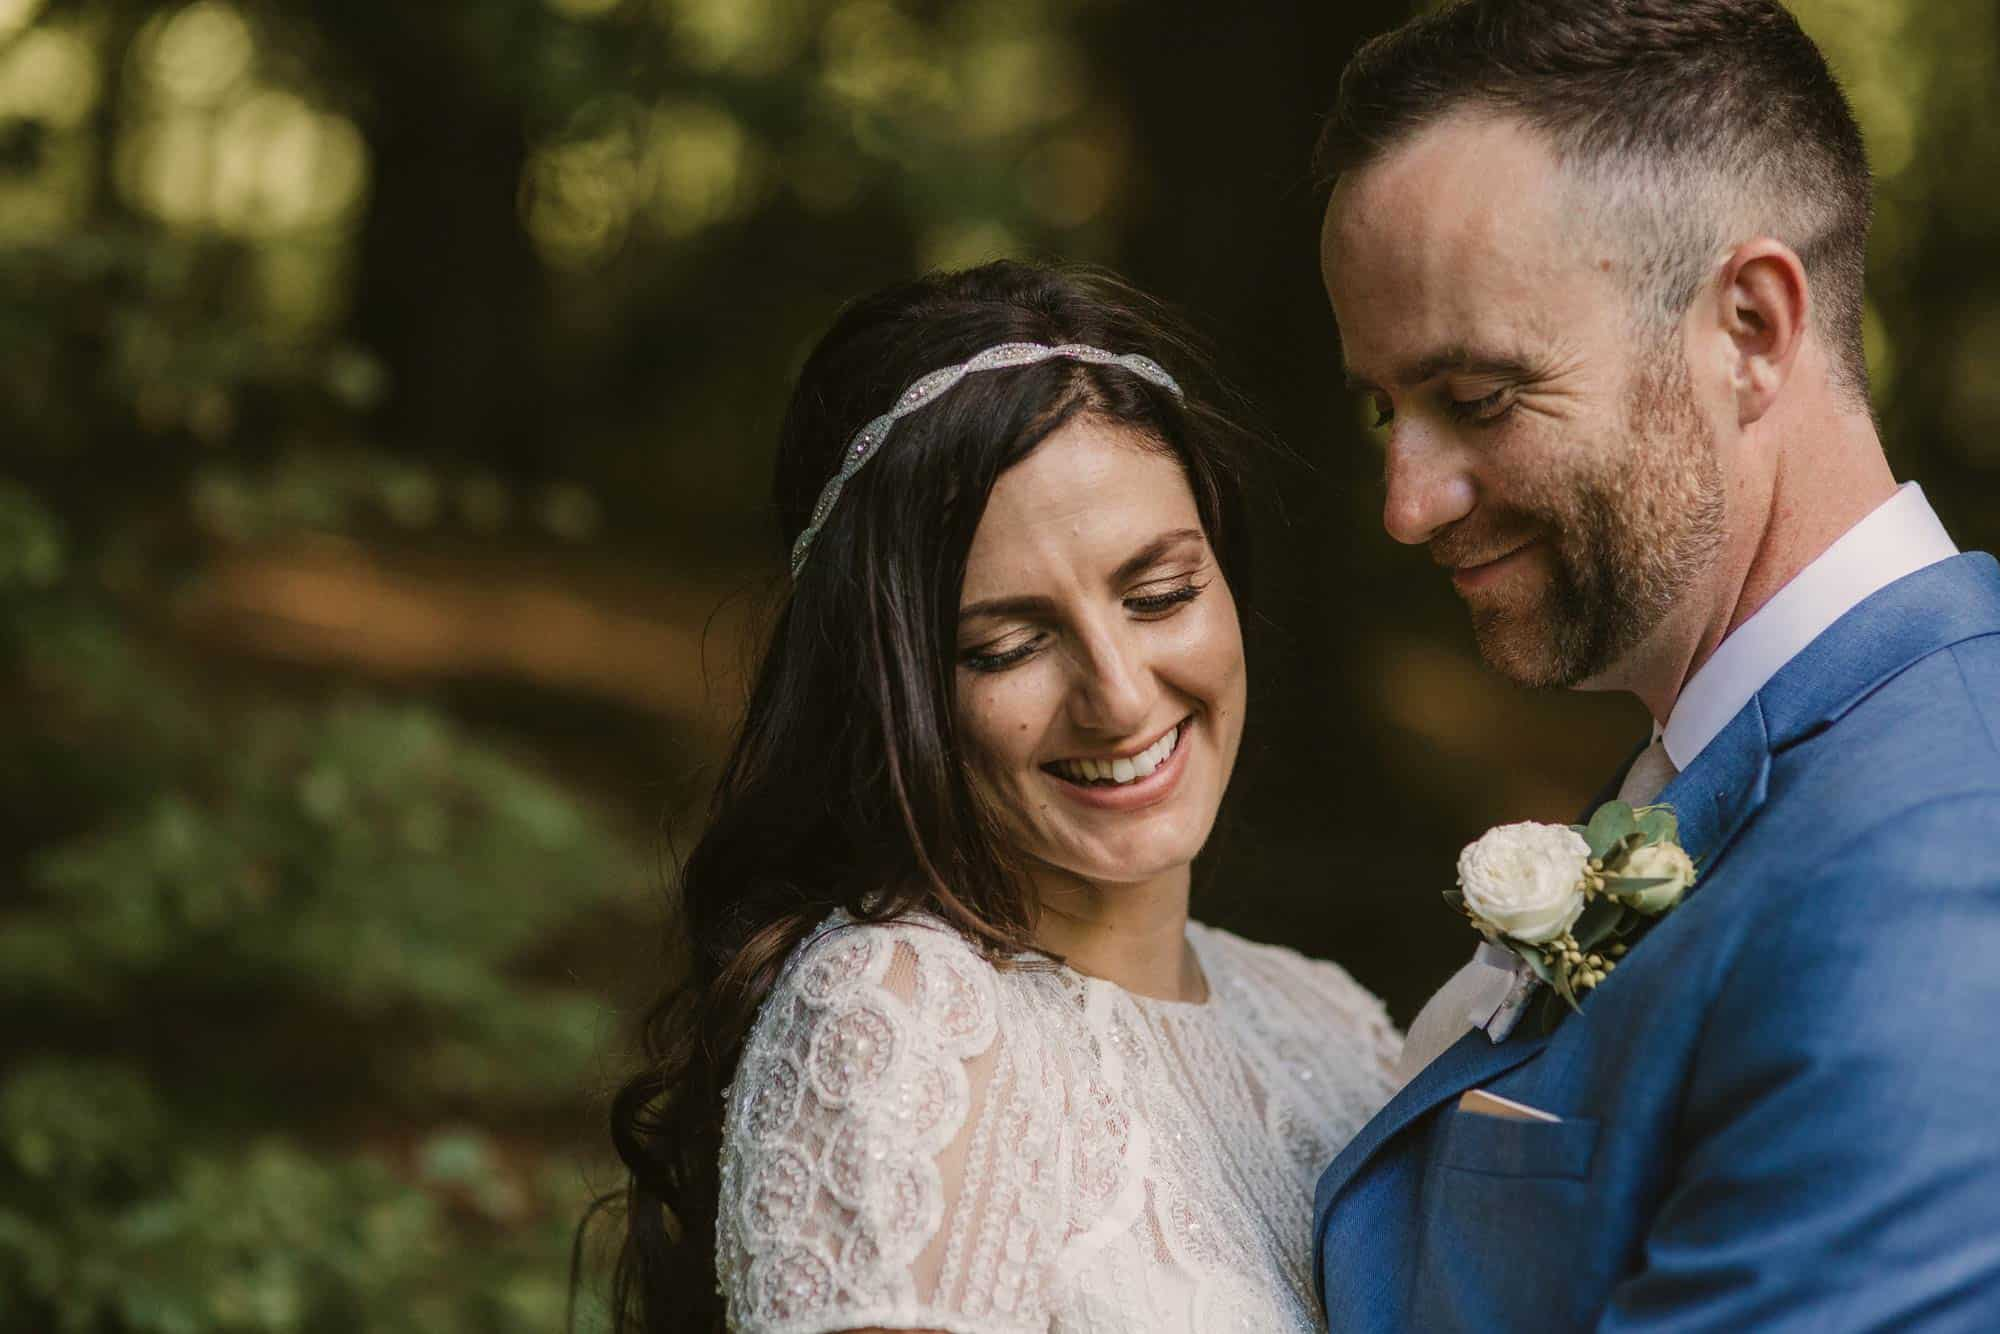 Elopement videographer Ireland, couple smiling in forest